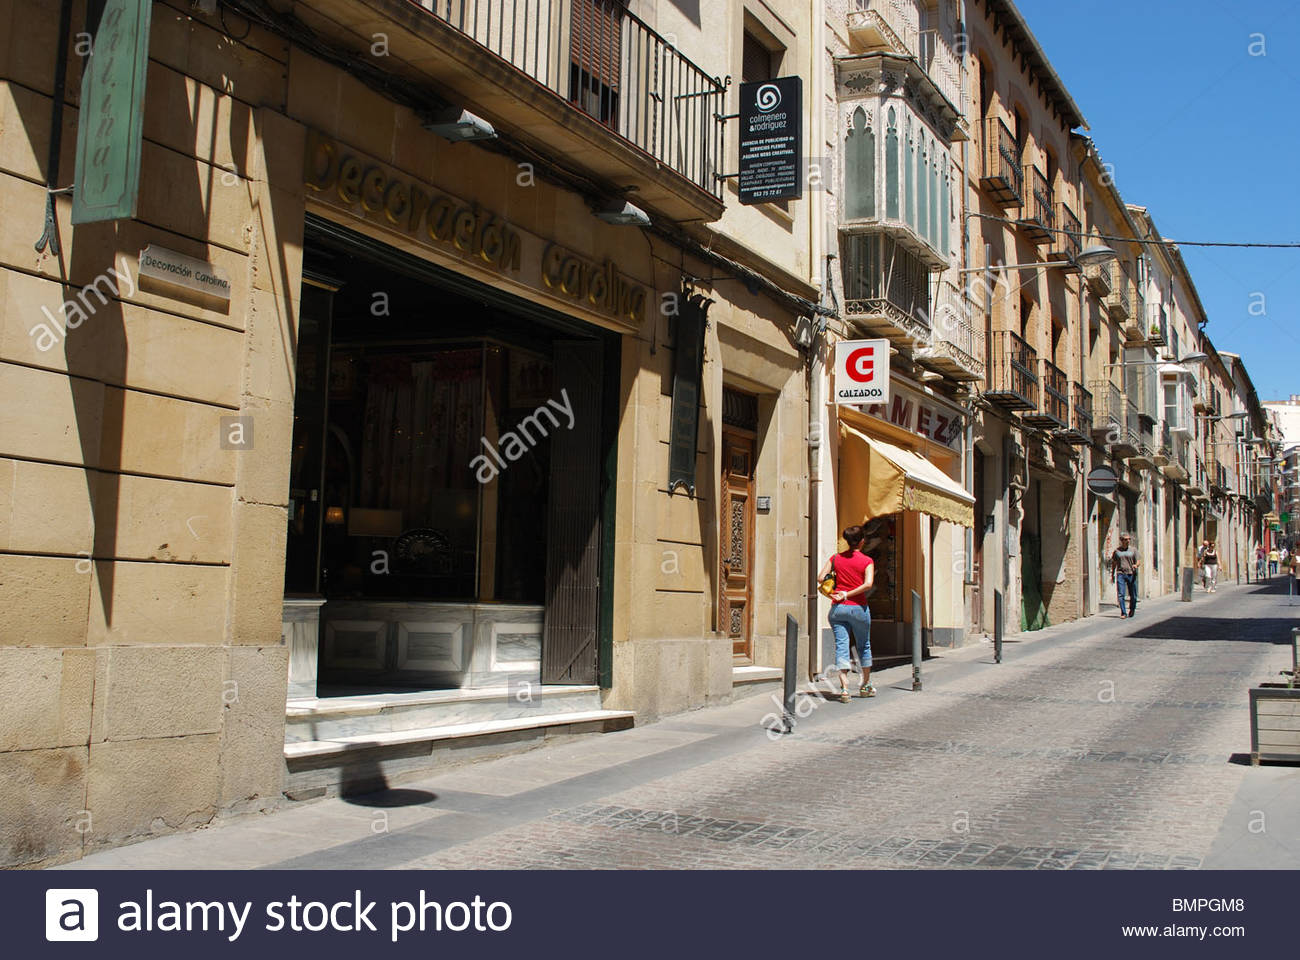 Old town shopping street, Ubeda, Jaen Province, Andalucia, Spain, Western Europe. Stock Photo